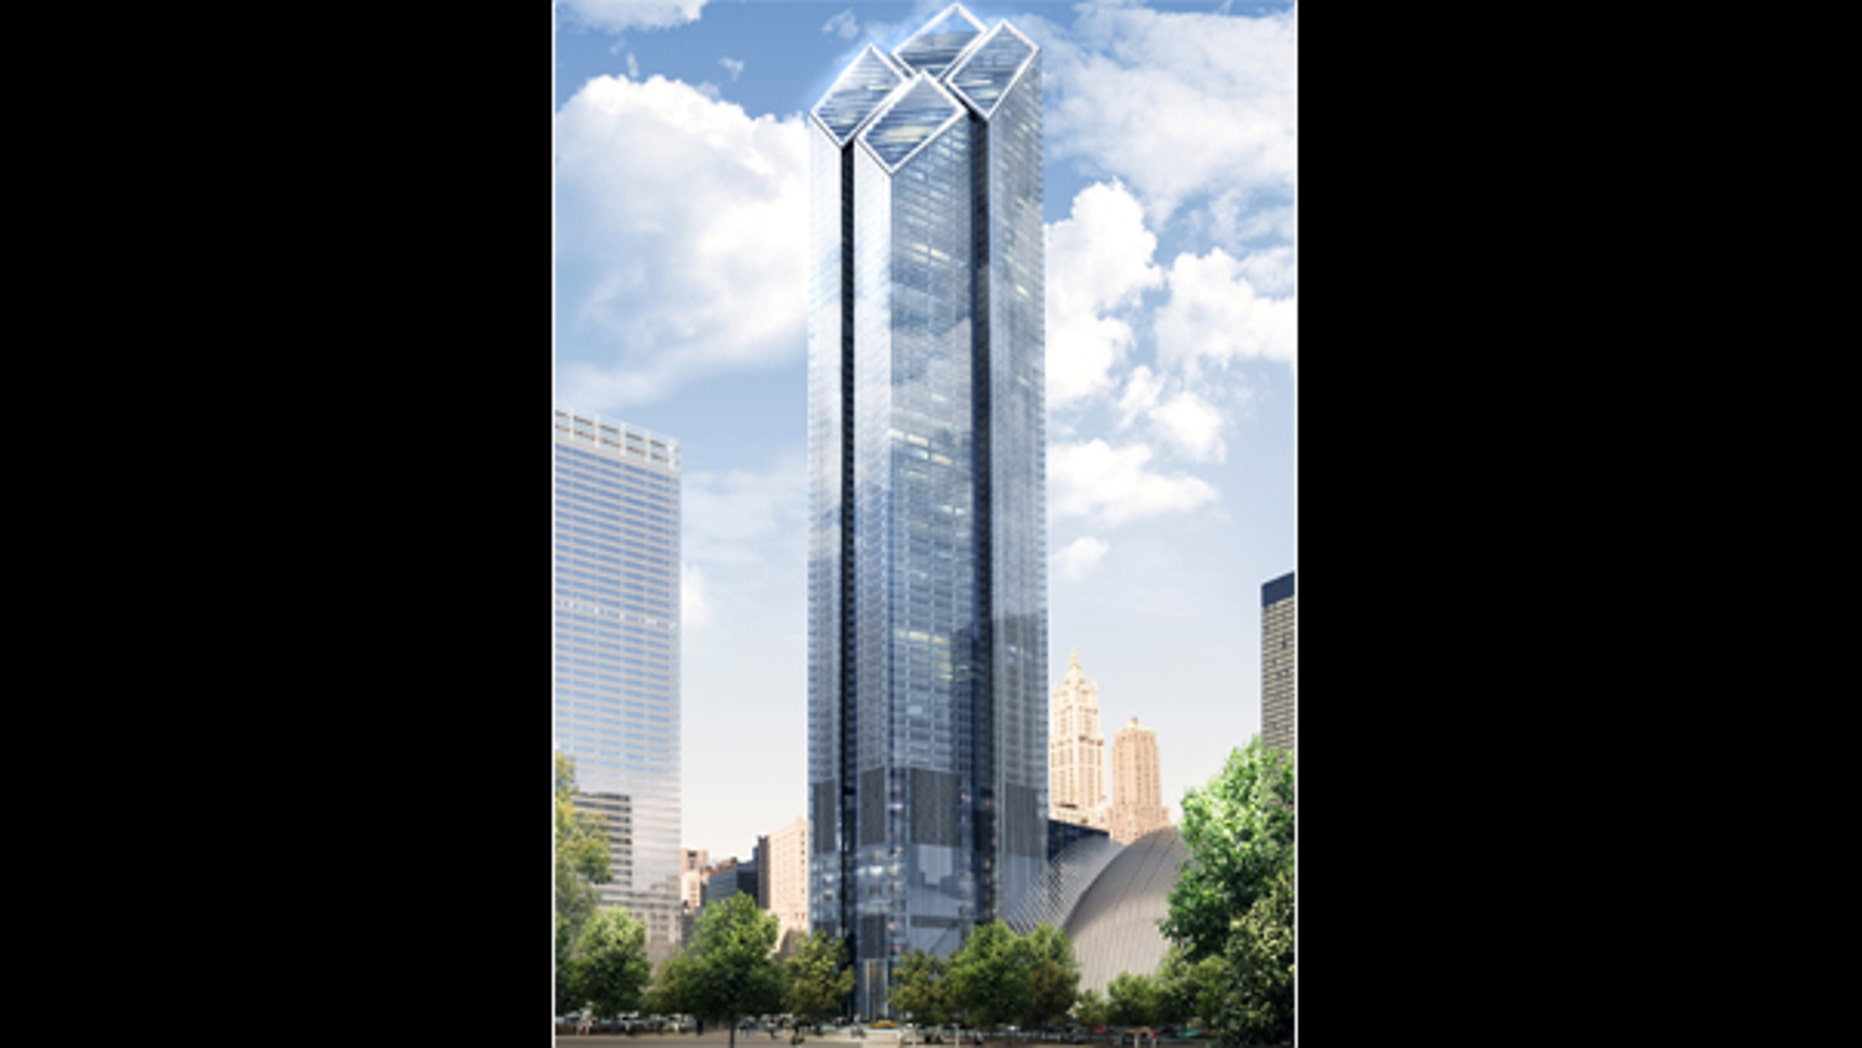 A computer rendering of the new World Trade Center's Tower 2.